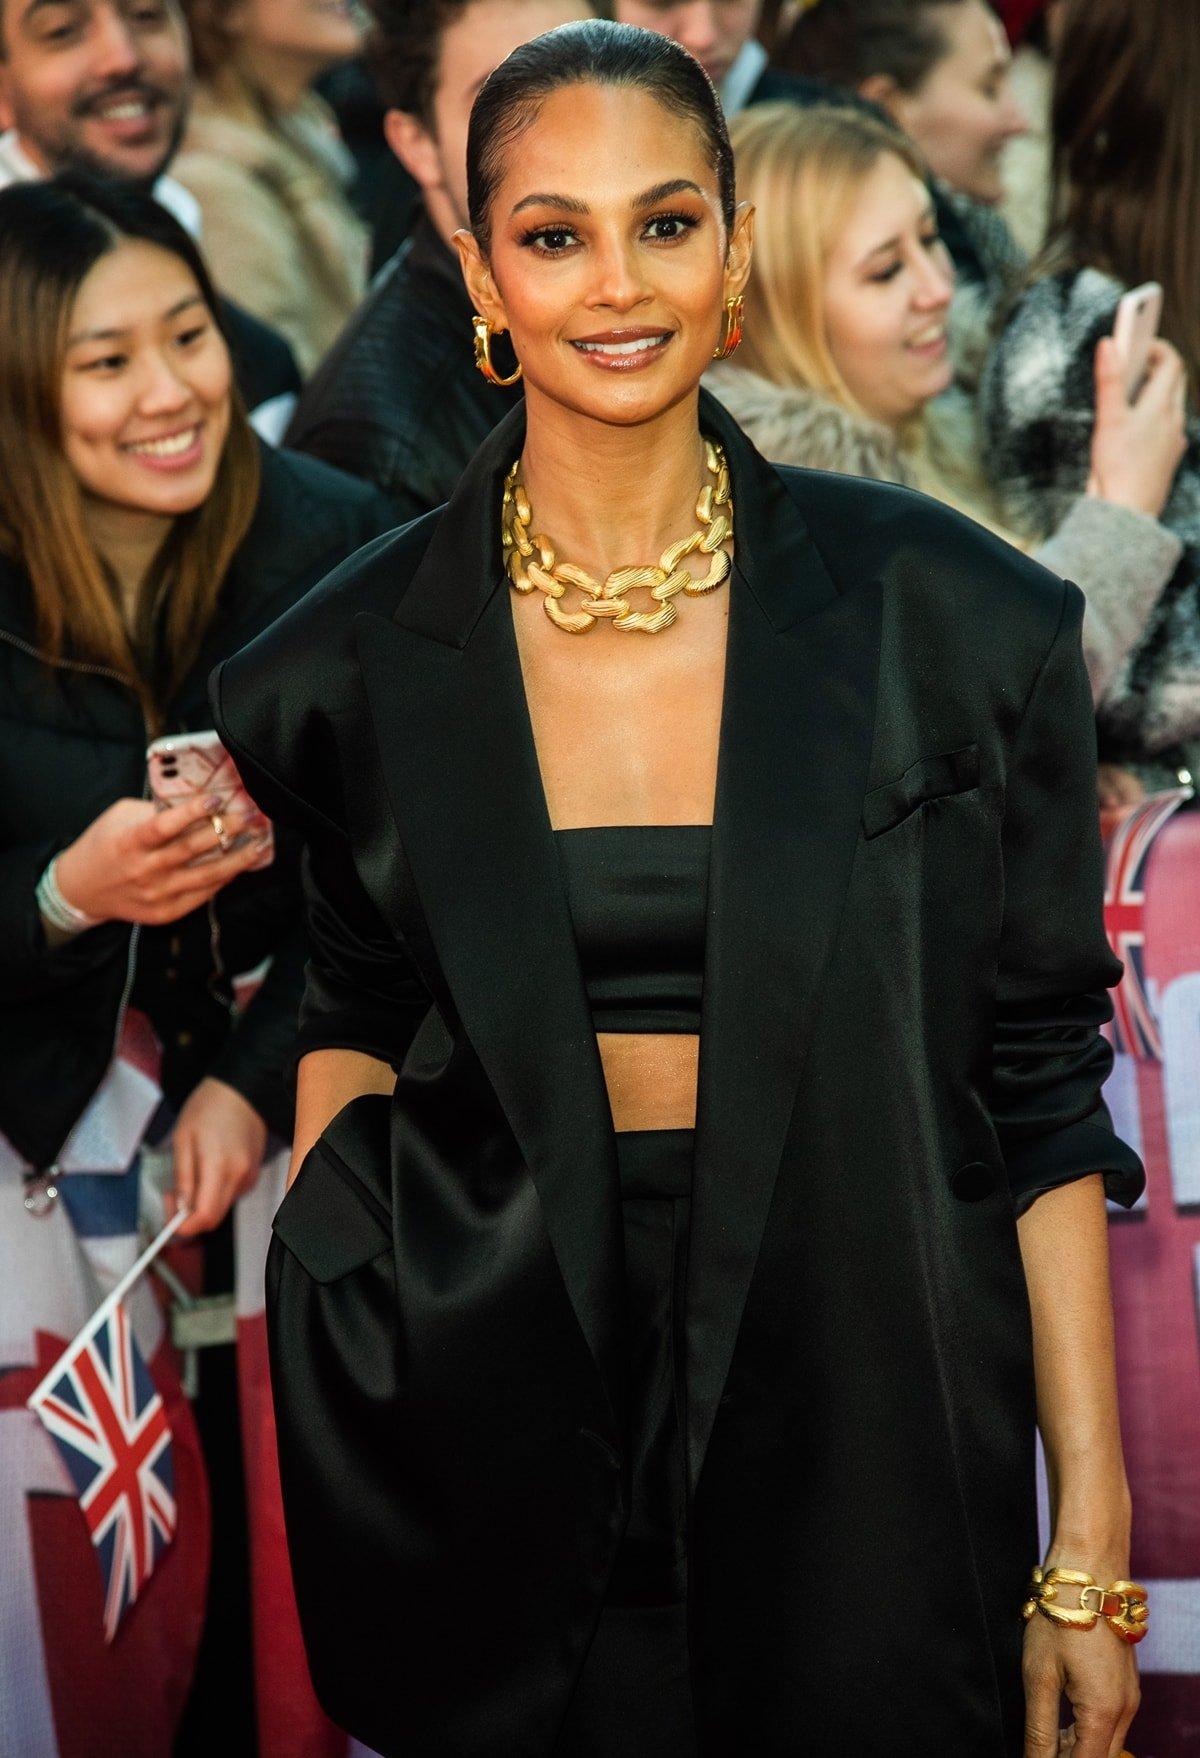 Alesha Dixon attends Britain's Got Talent 2020 photocall at the London Palladium on January 19, 2020, in London, England